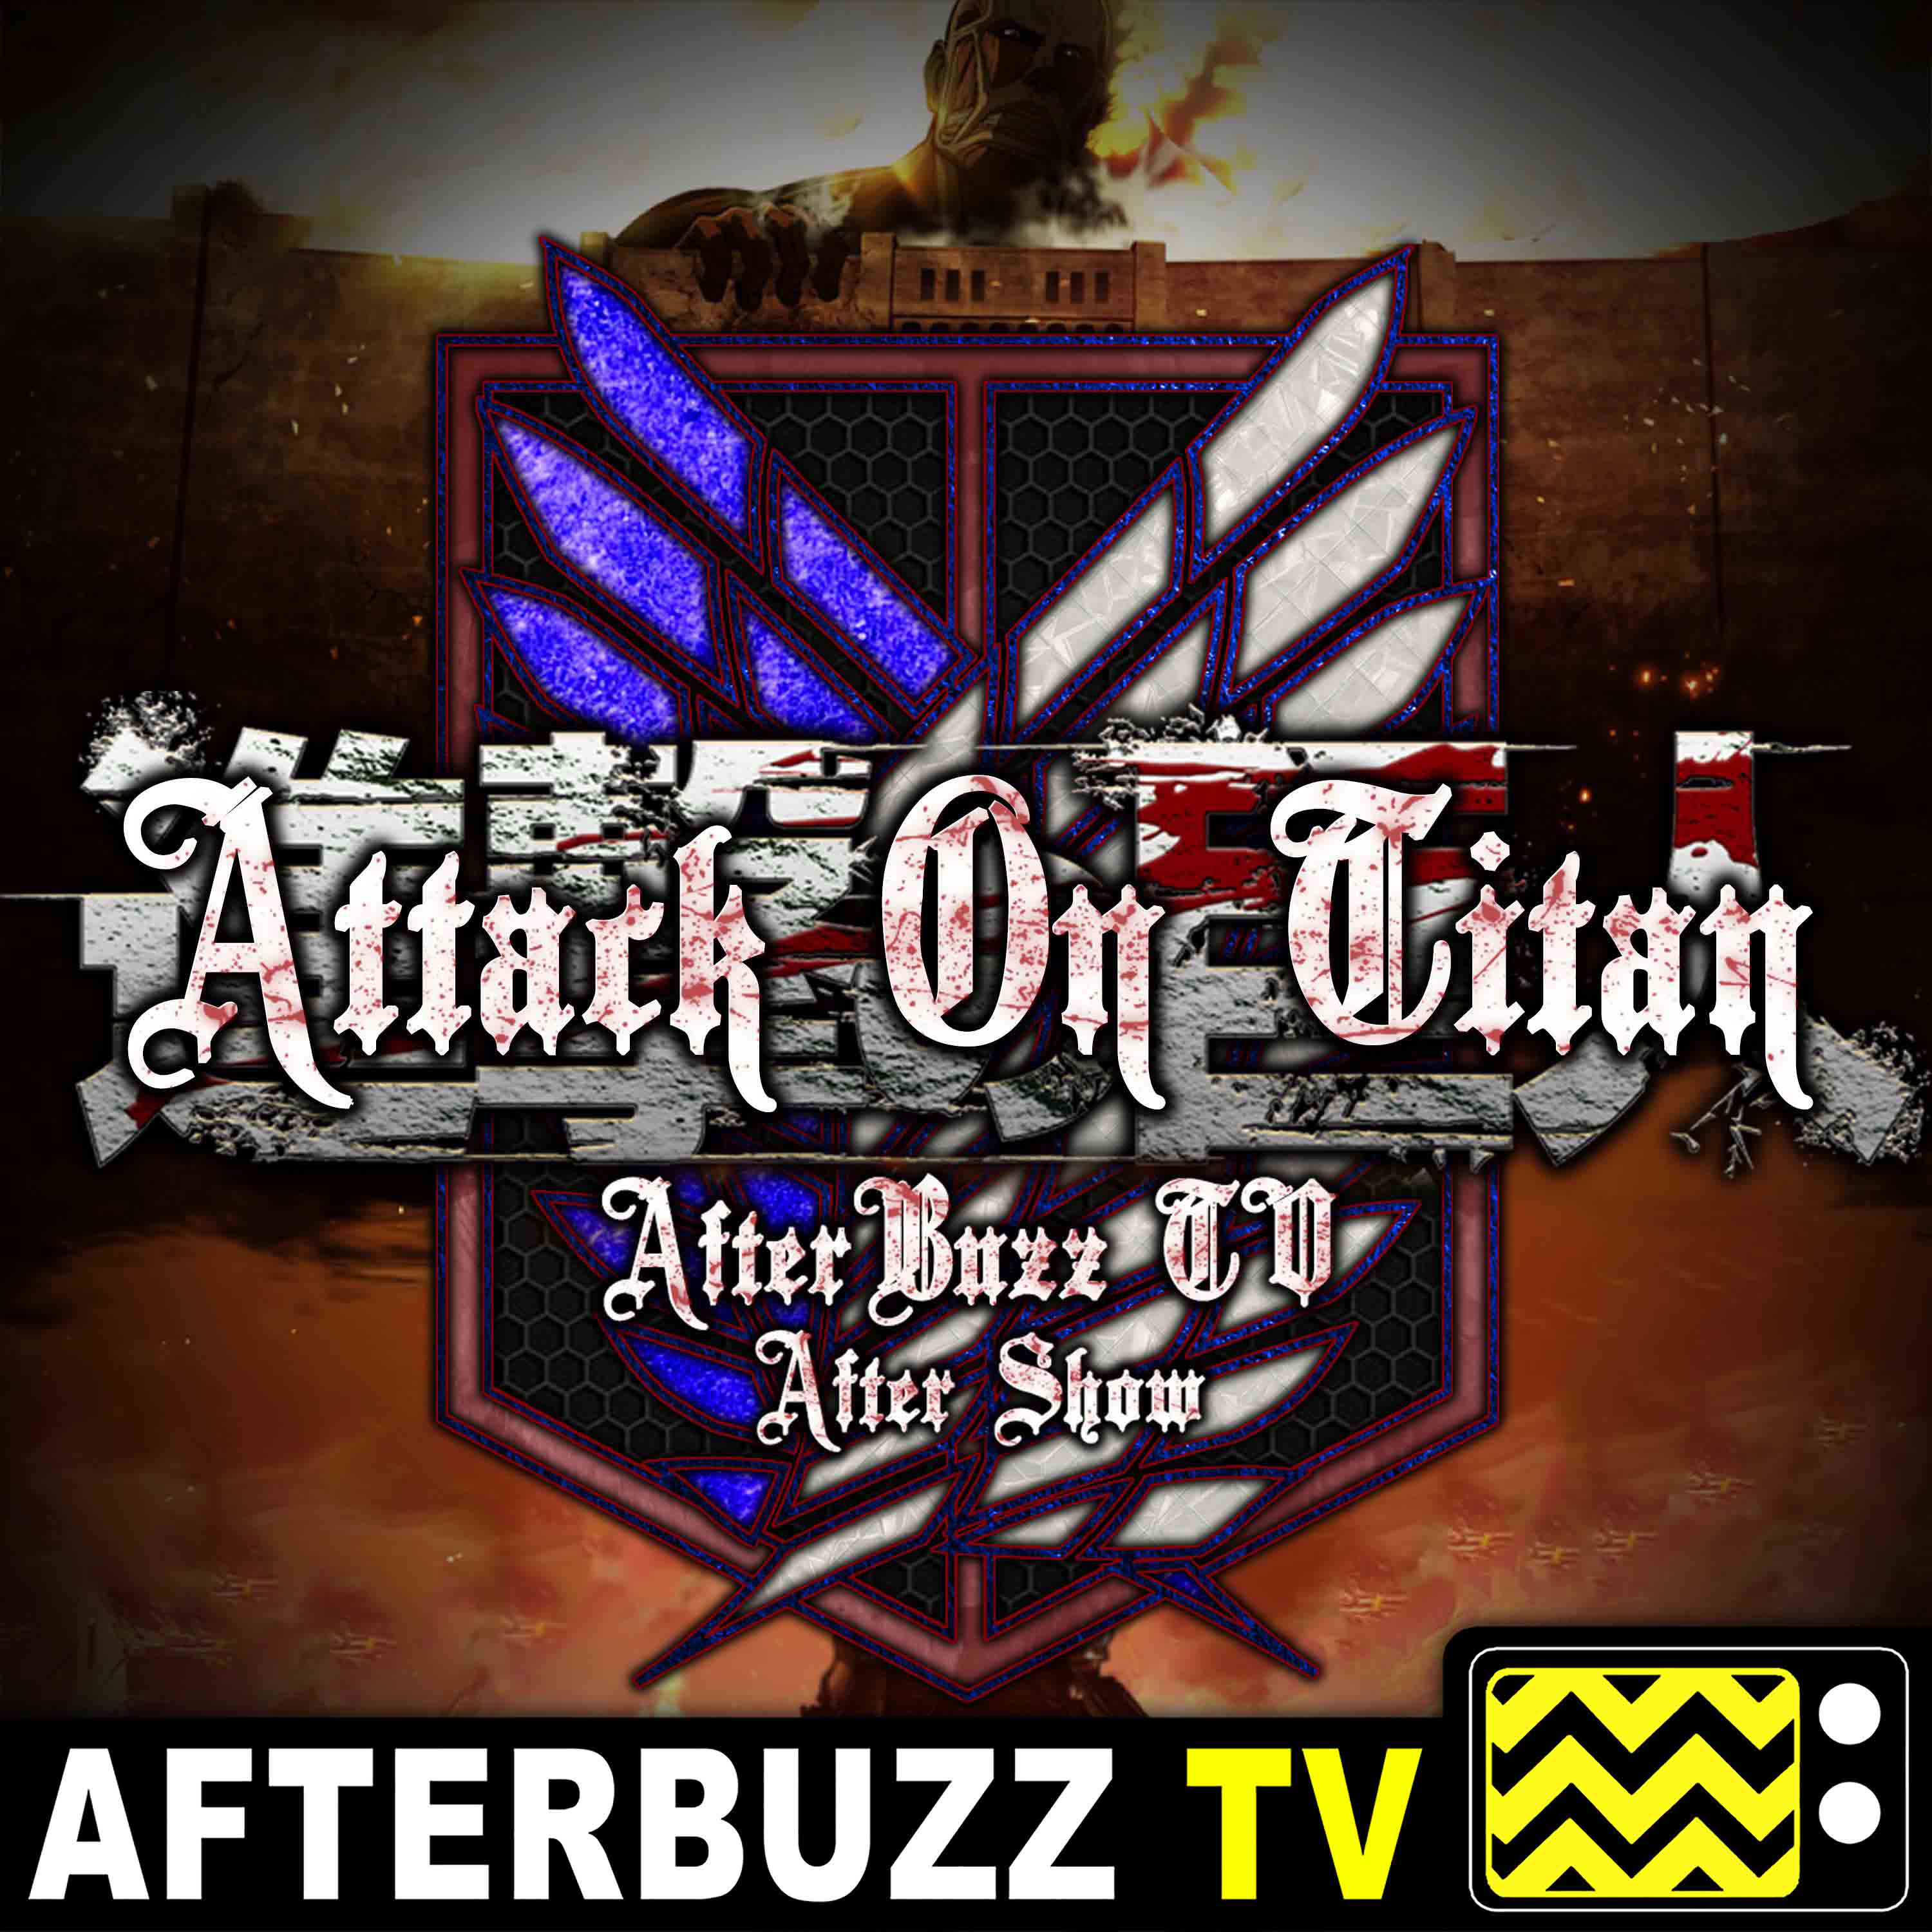 Attack On Titan Reviews and After Show